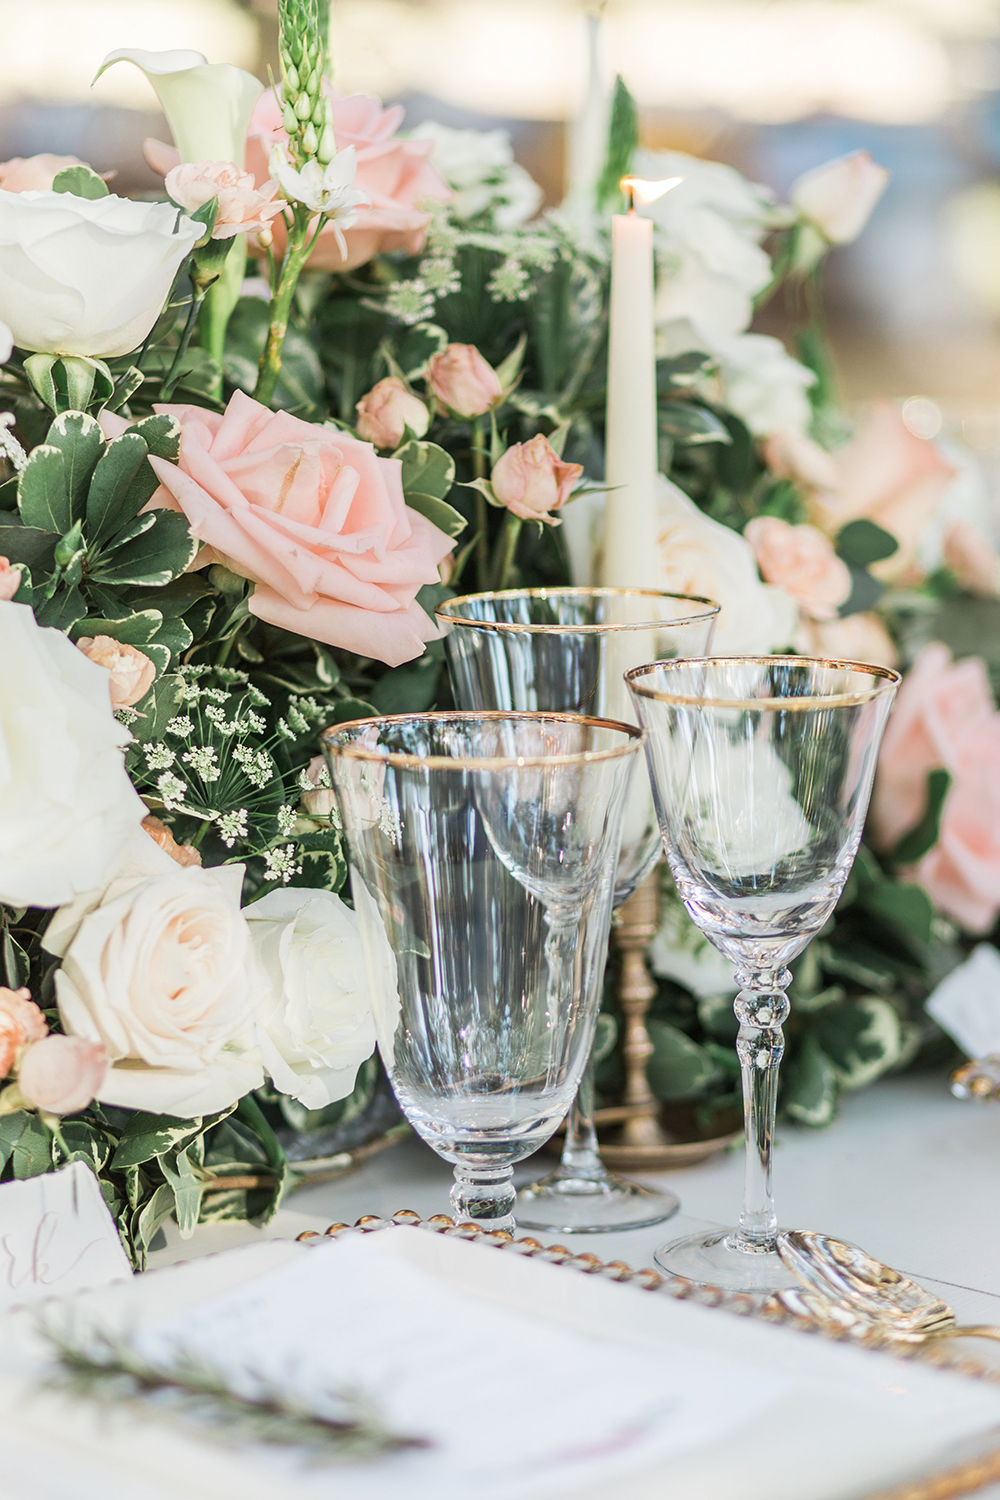 wedding centerpieces - photo by Landon Hendrick Photography http://ruffledblog.com/southern-garden-chic-wedding-inspiration